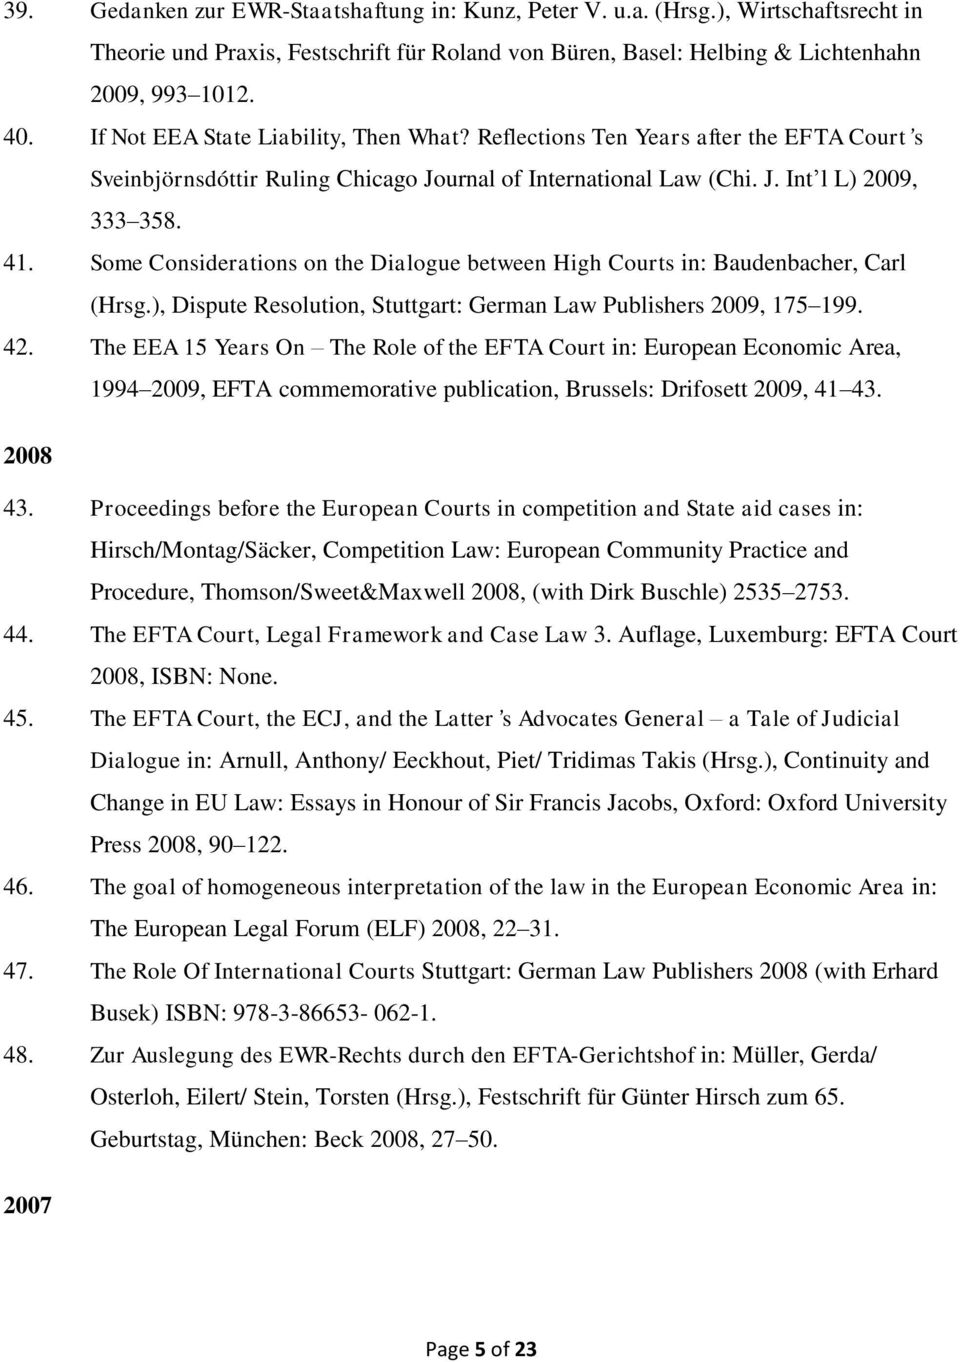 essays in honour of sir francis jacobs Continuity and change in eu law: essays in honour of sir francis jacobs arnull, a (ed), eeckhout, p (ed) & tridimas, t (ed) 2008 oxford: oxford university press 544 p research output: book/report report view all (15) » post to twitter post to facebook post to digg view graph of relations king's college.